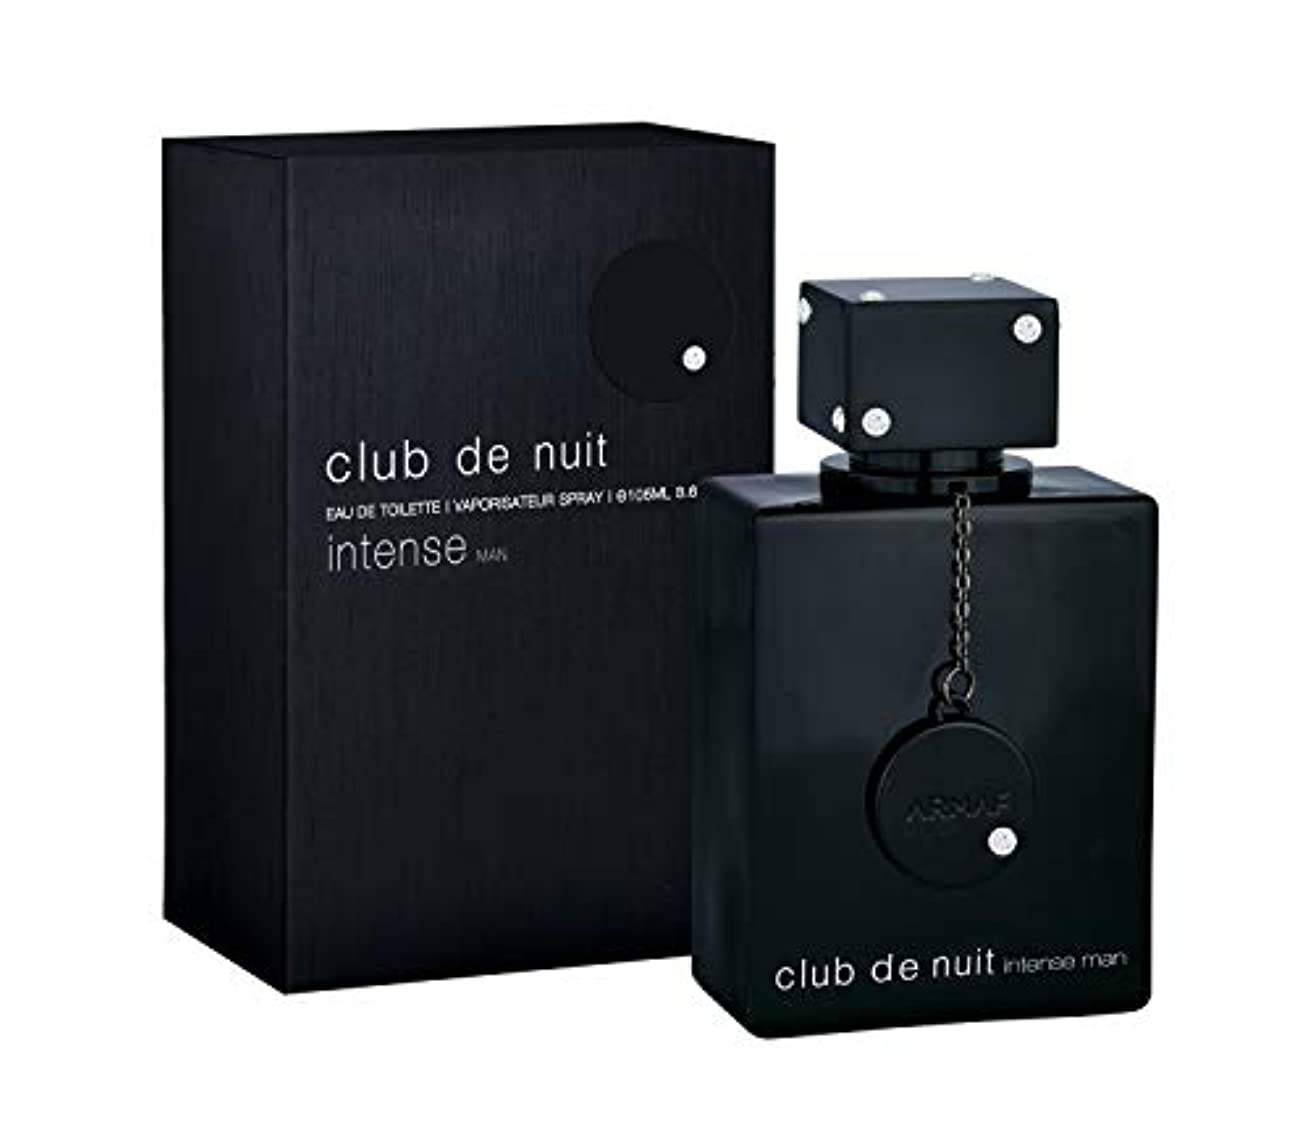 休暇接辞追加Armaf club de nuit men intense Perfume EDT Eau De Toilette 100 ml Fragrance